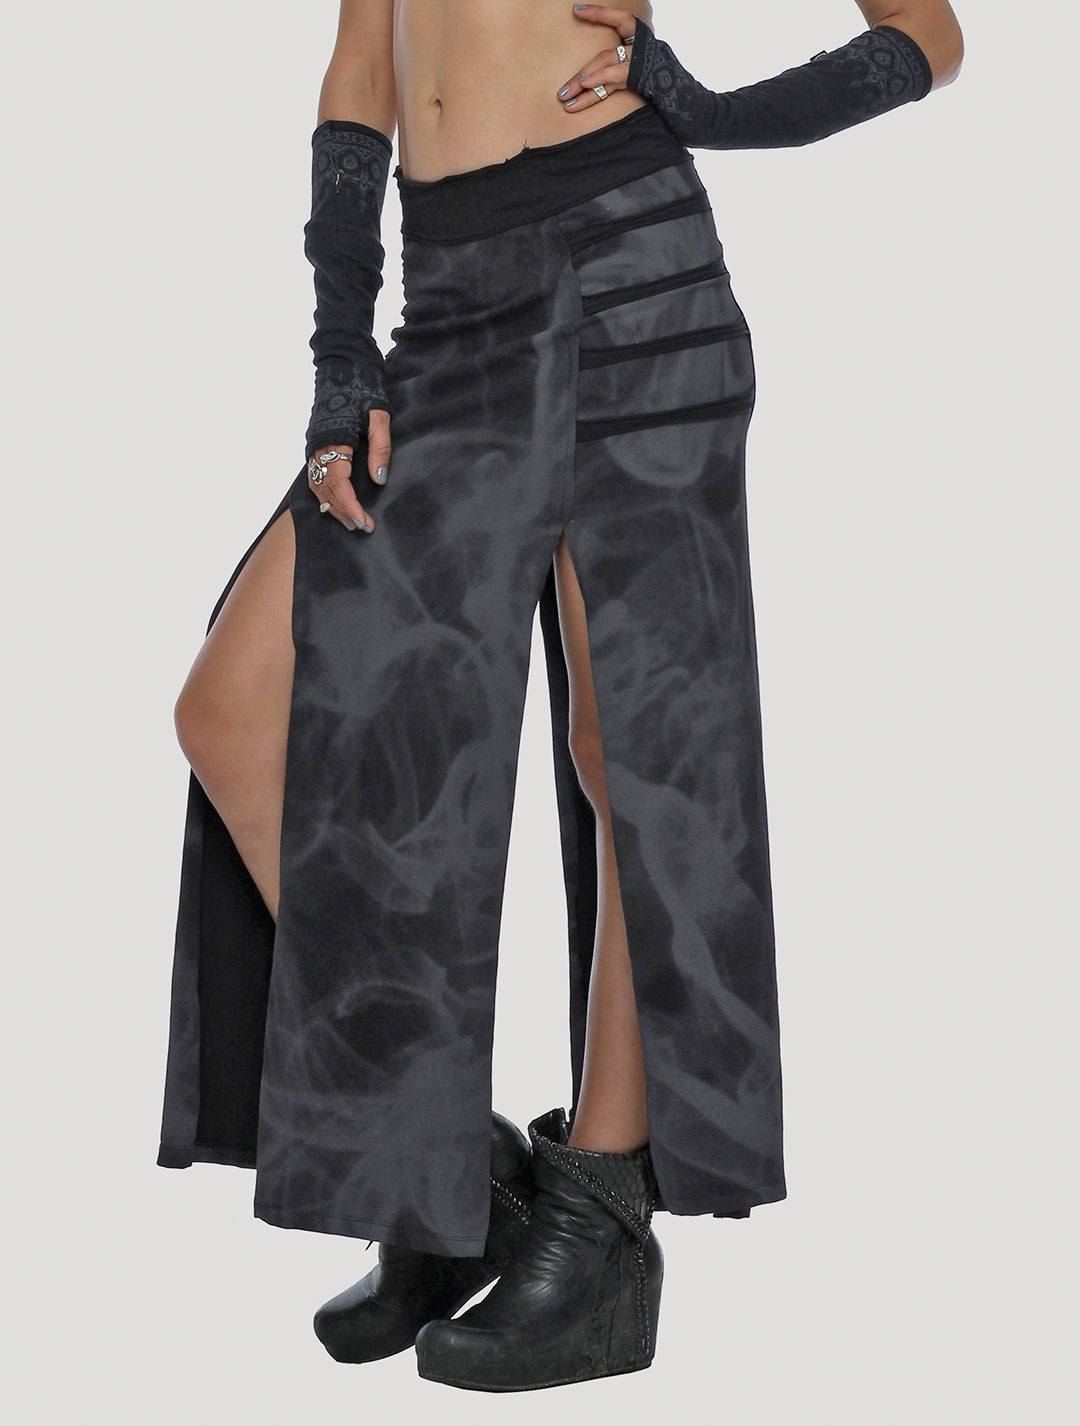 Stellar Rmx Long Skirt - Psylo Fashion